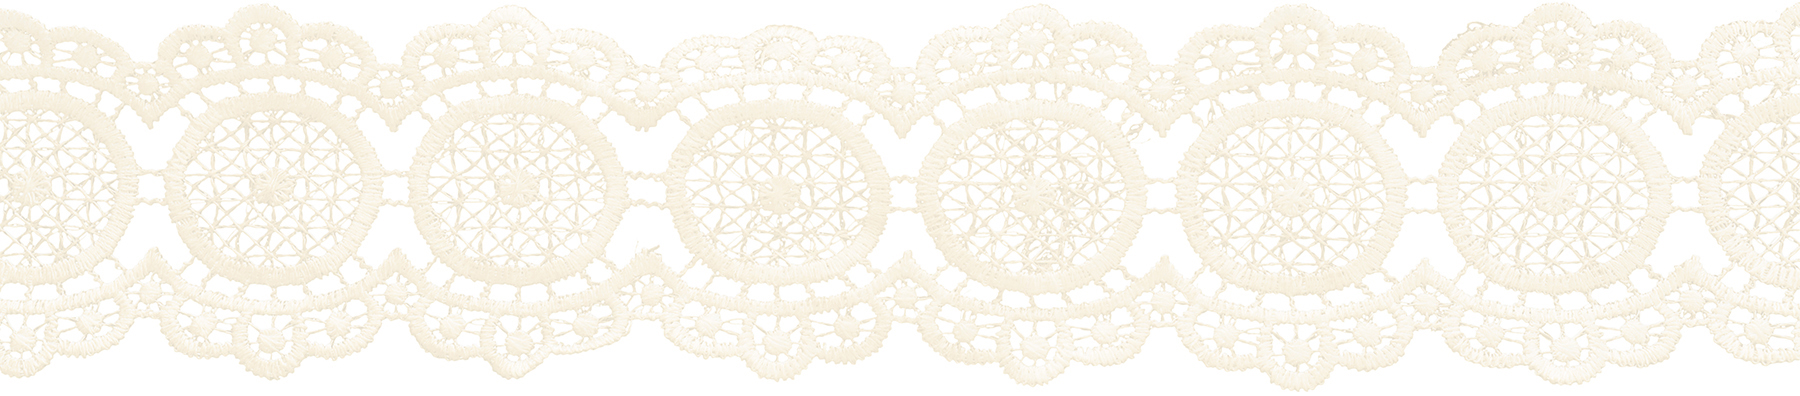 Wrights® Circular Venice Lace Trim 2.25\u0027\u0027x10 yds-Antique White